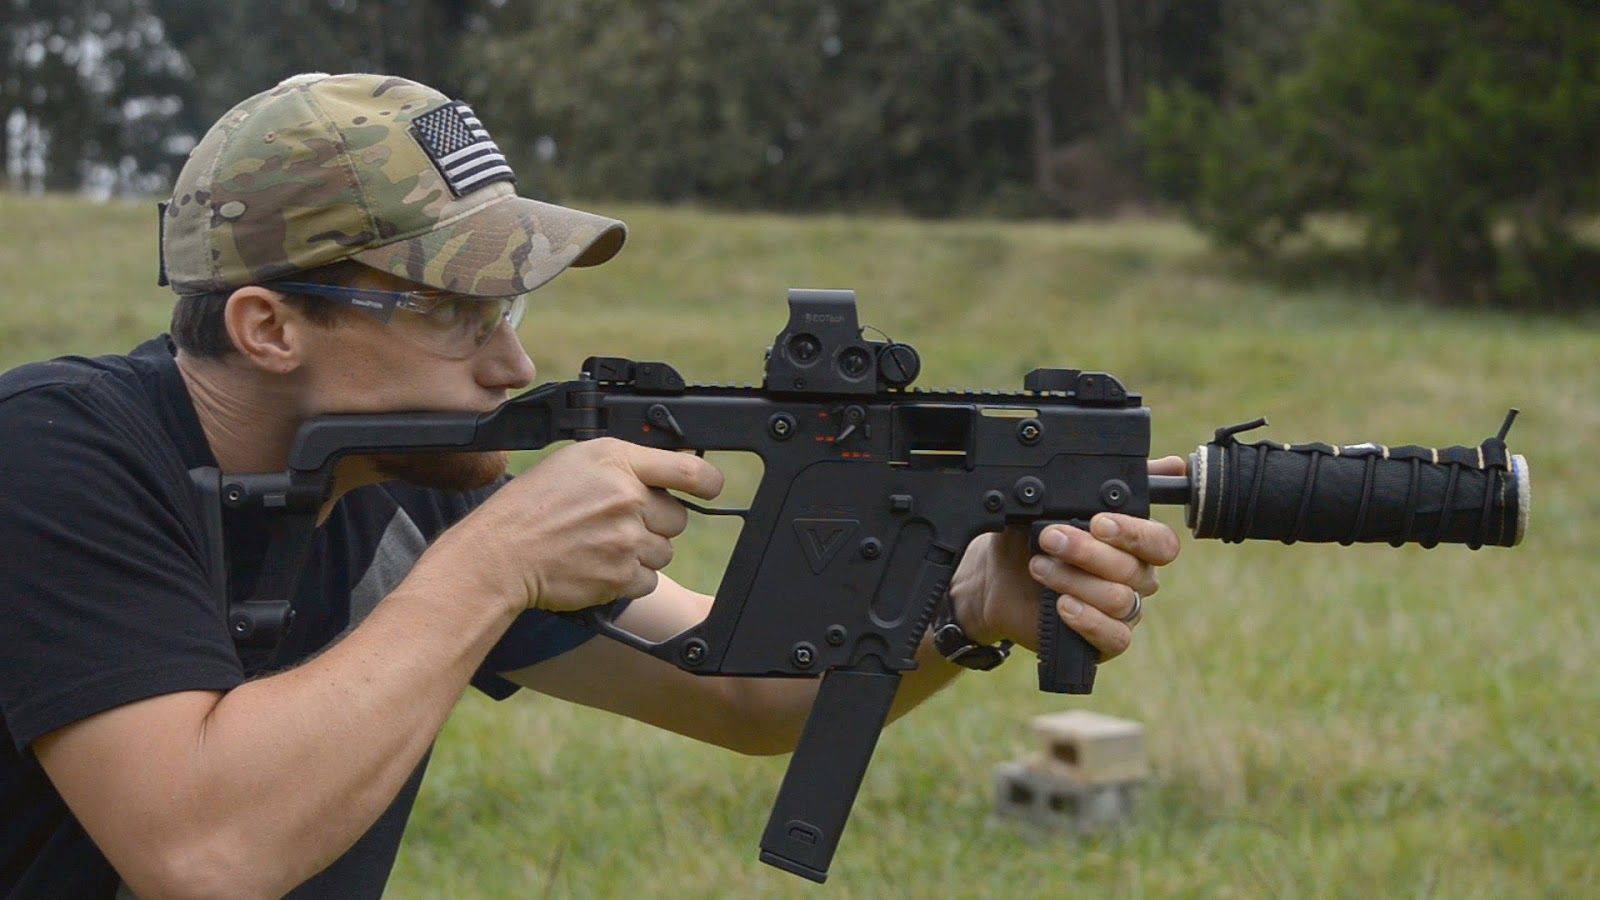 Kriss Vector SMG ~ Weapon